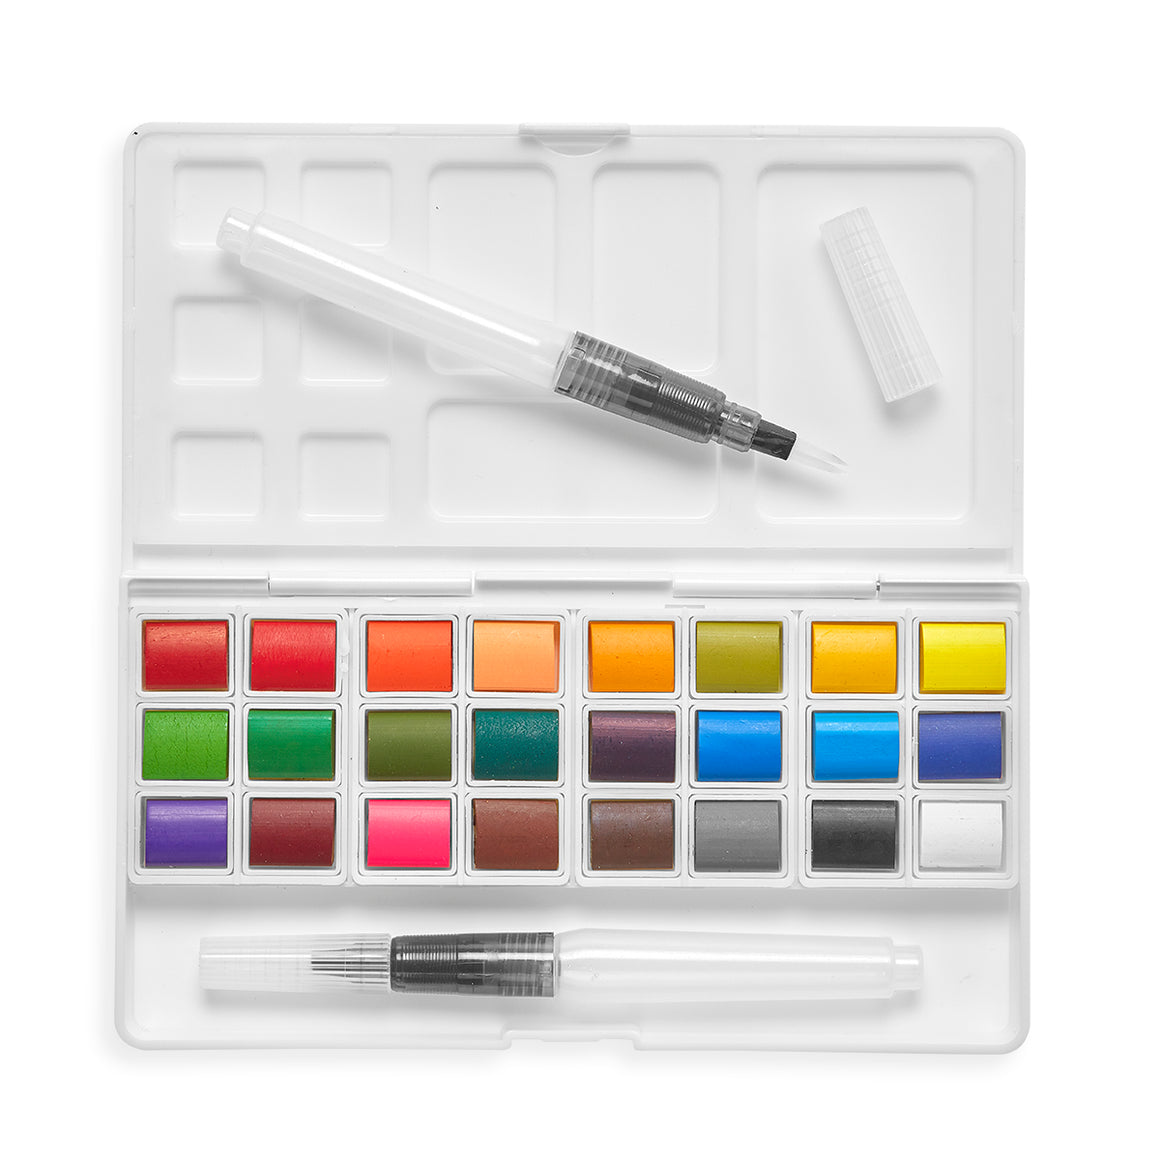 Watercolor Palette | Chroma Blends Travel | 27 Piece Set